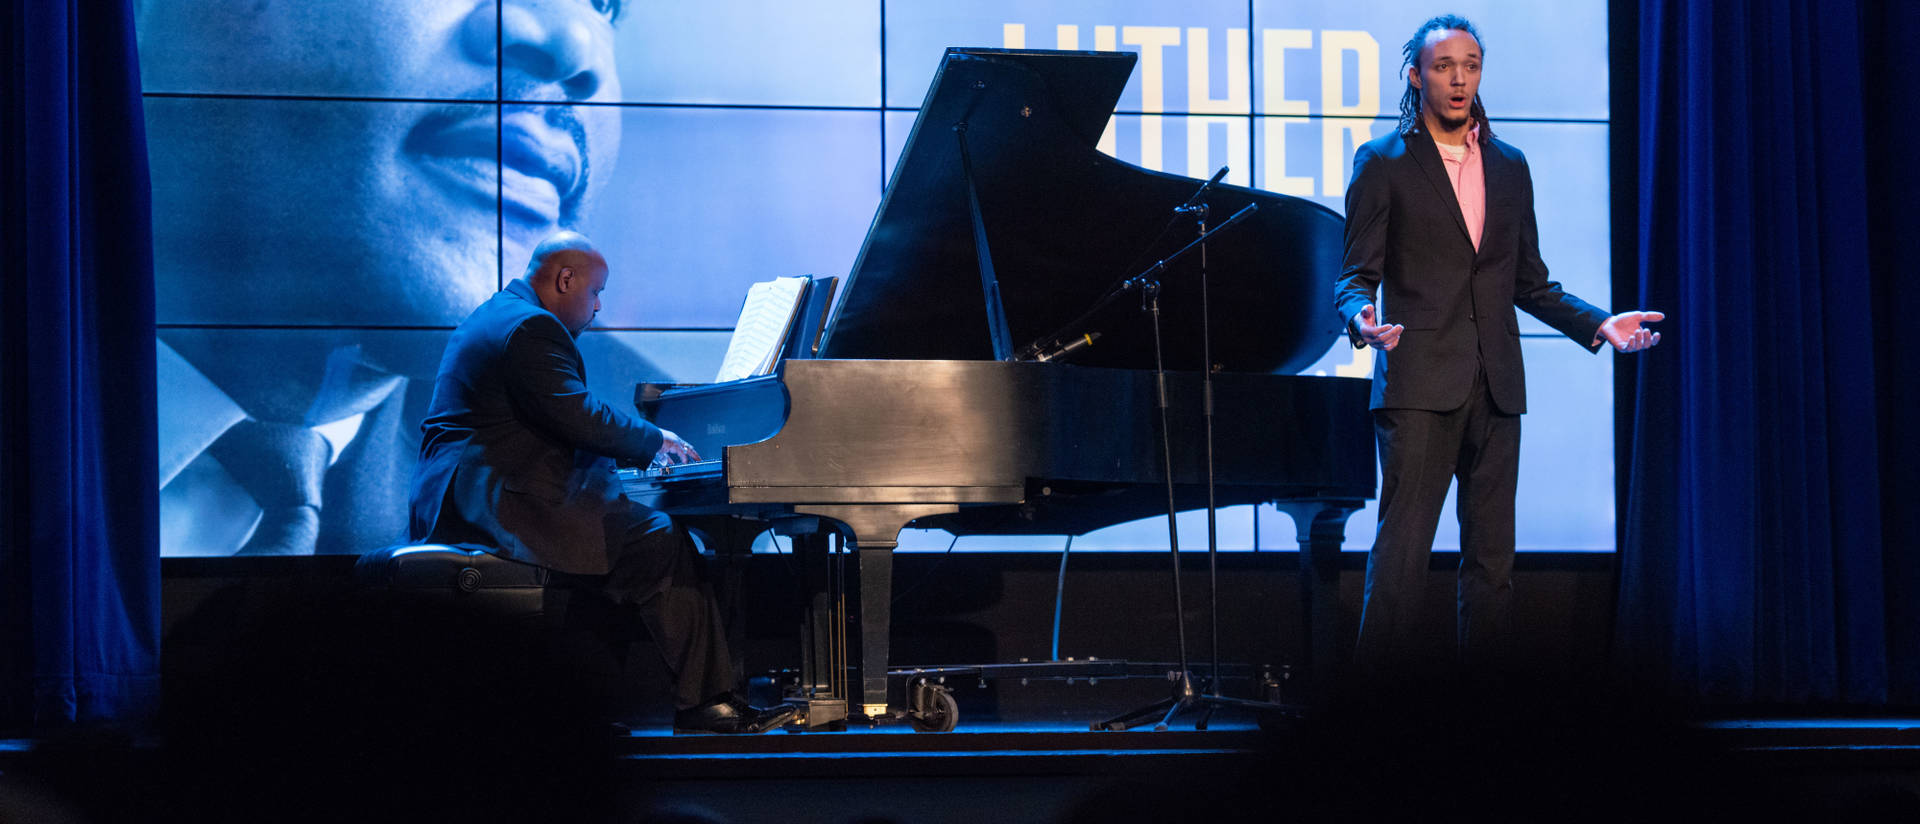 UW-Eau Claire student Elijah Vanderpoel performs a vocal solo at the 2019 Martin Luther King Jr. Celebration, with Dr. Frank Watkins, assistant professor of music, providing piano accompaniment.